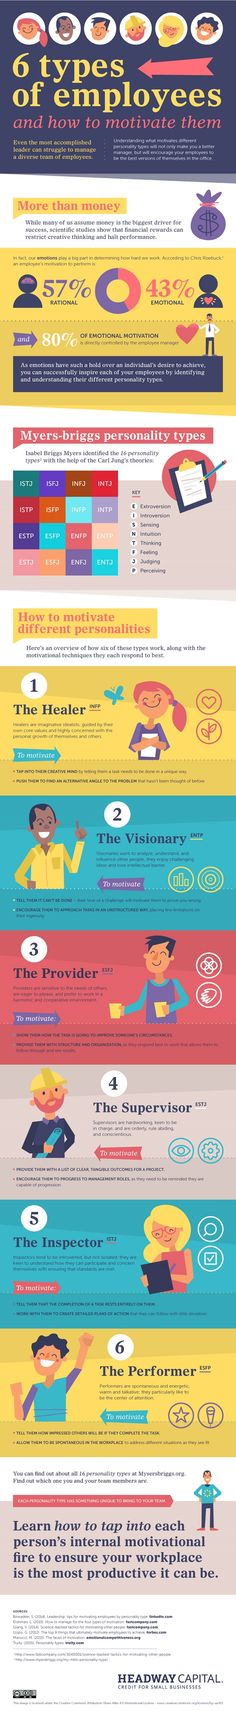 Infographic: How To Motivate Employees With Different Personality Types - DesignTAXI.com